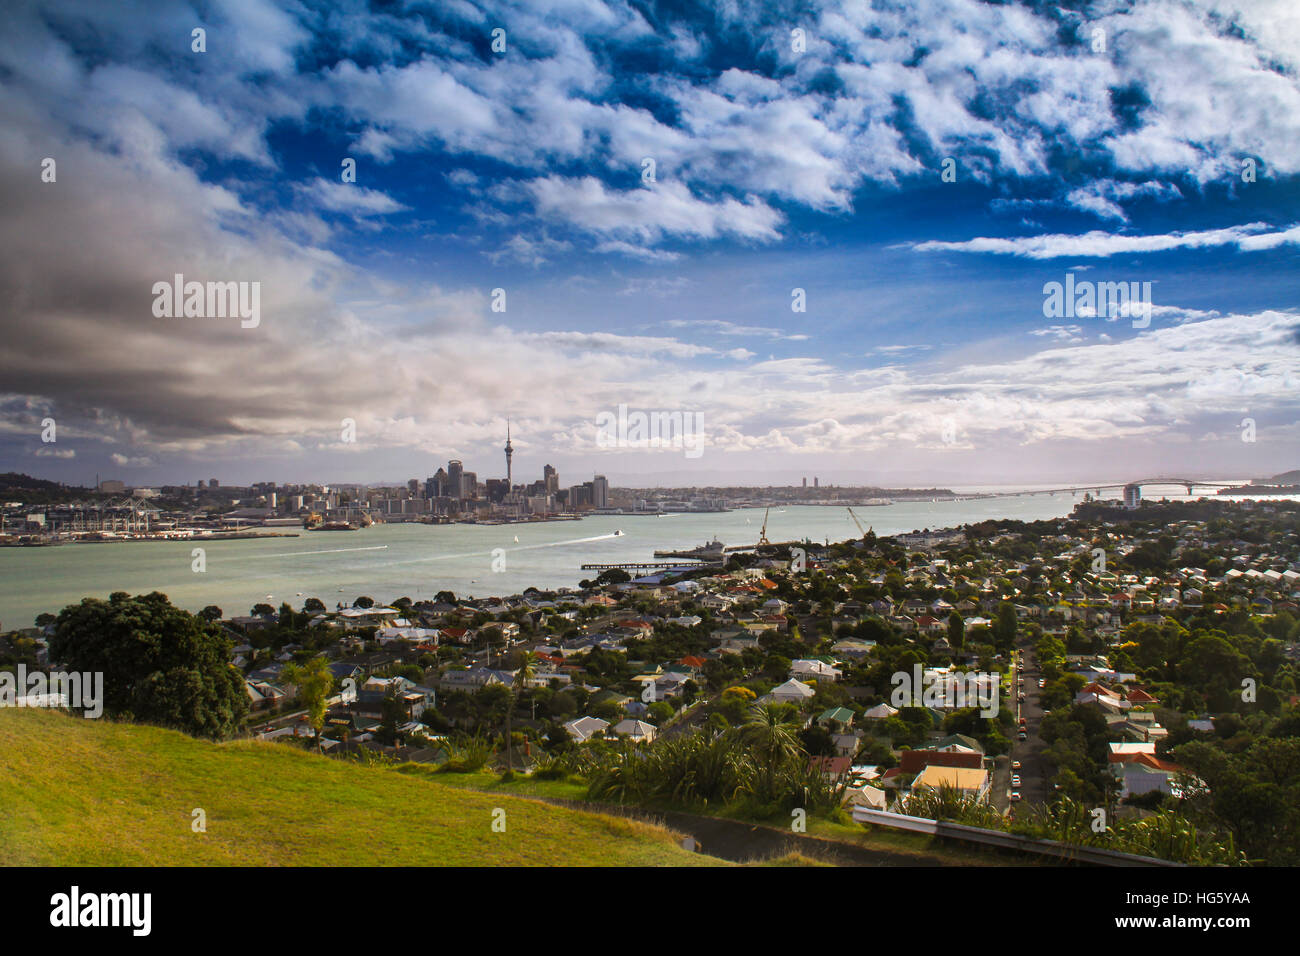 Panoramic view of Auckland Harbor from Mt. Eden, New Zealand - Stock Image